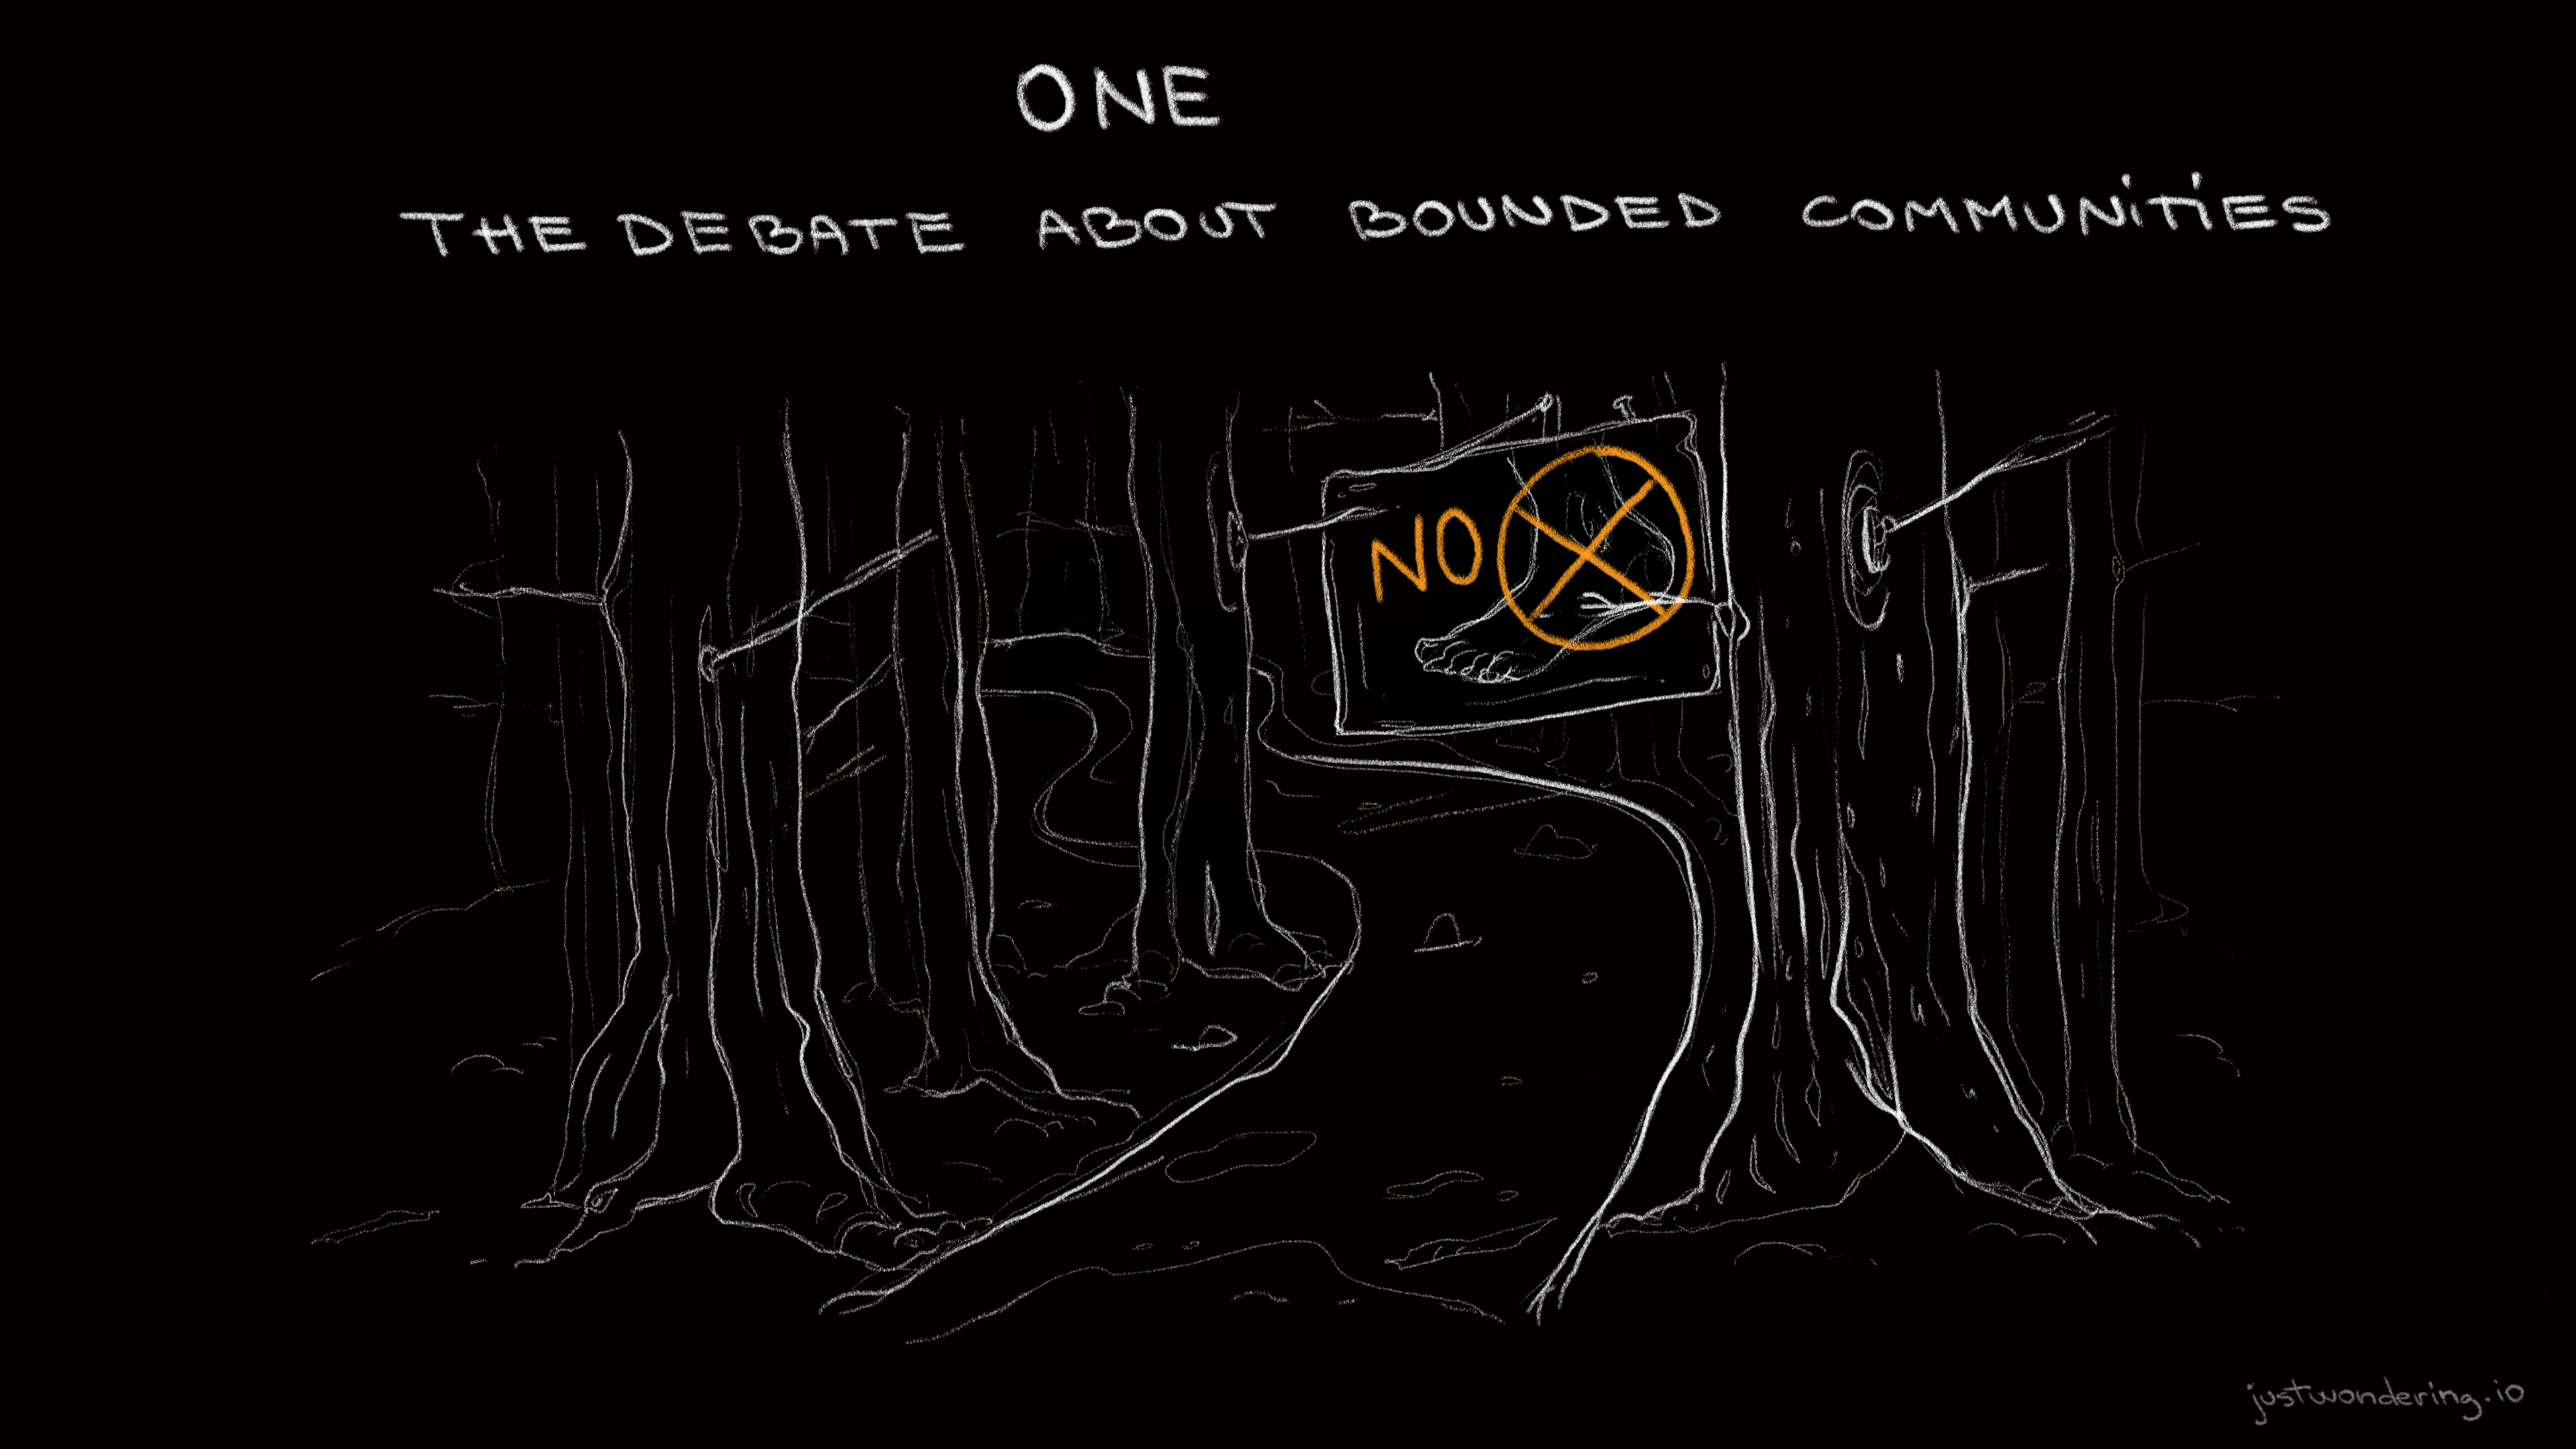 The debate about bounded communities